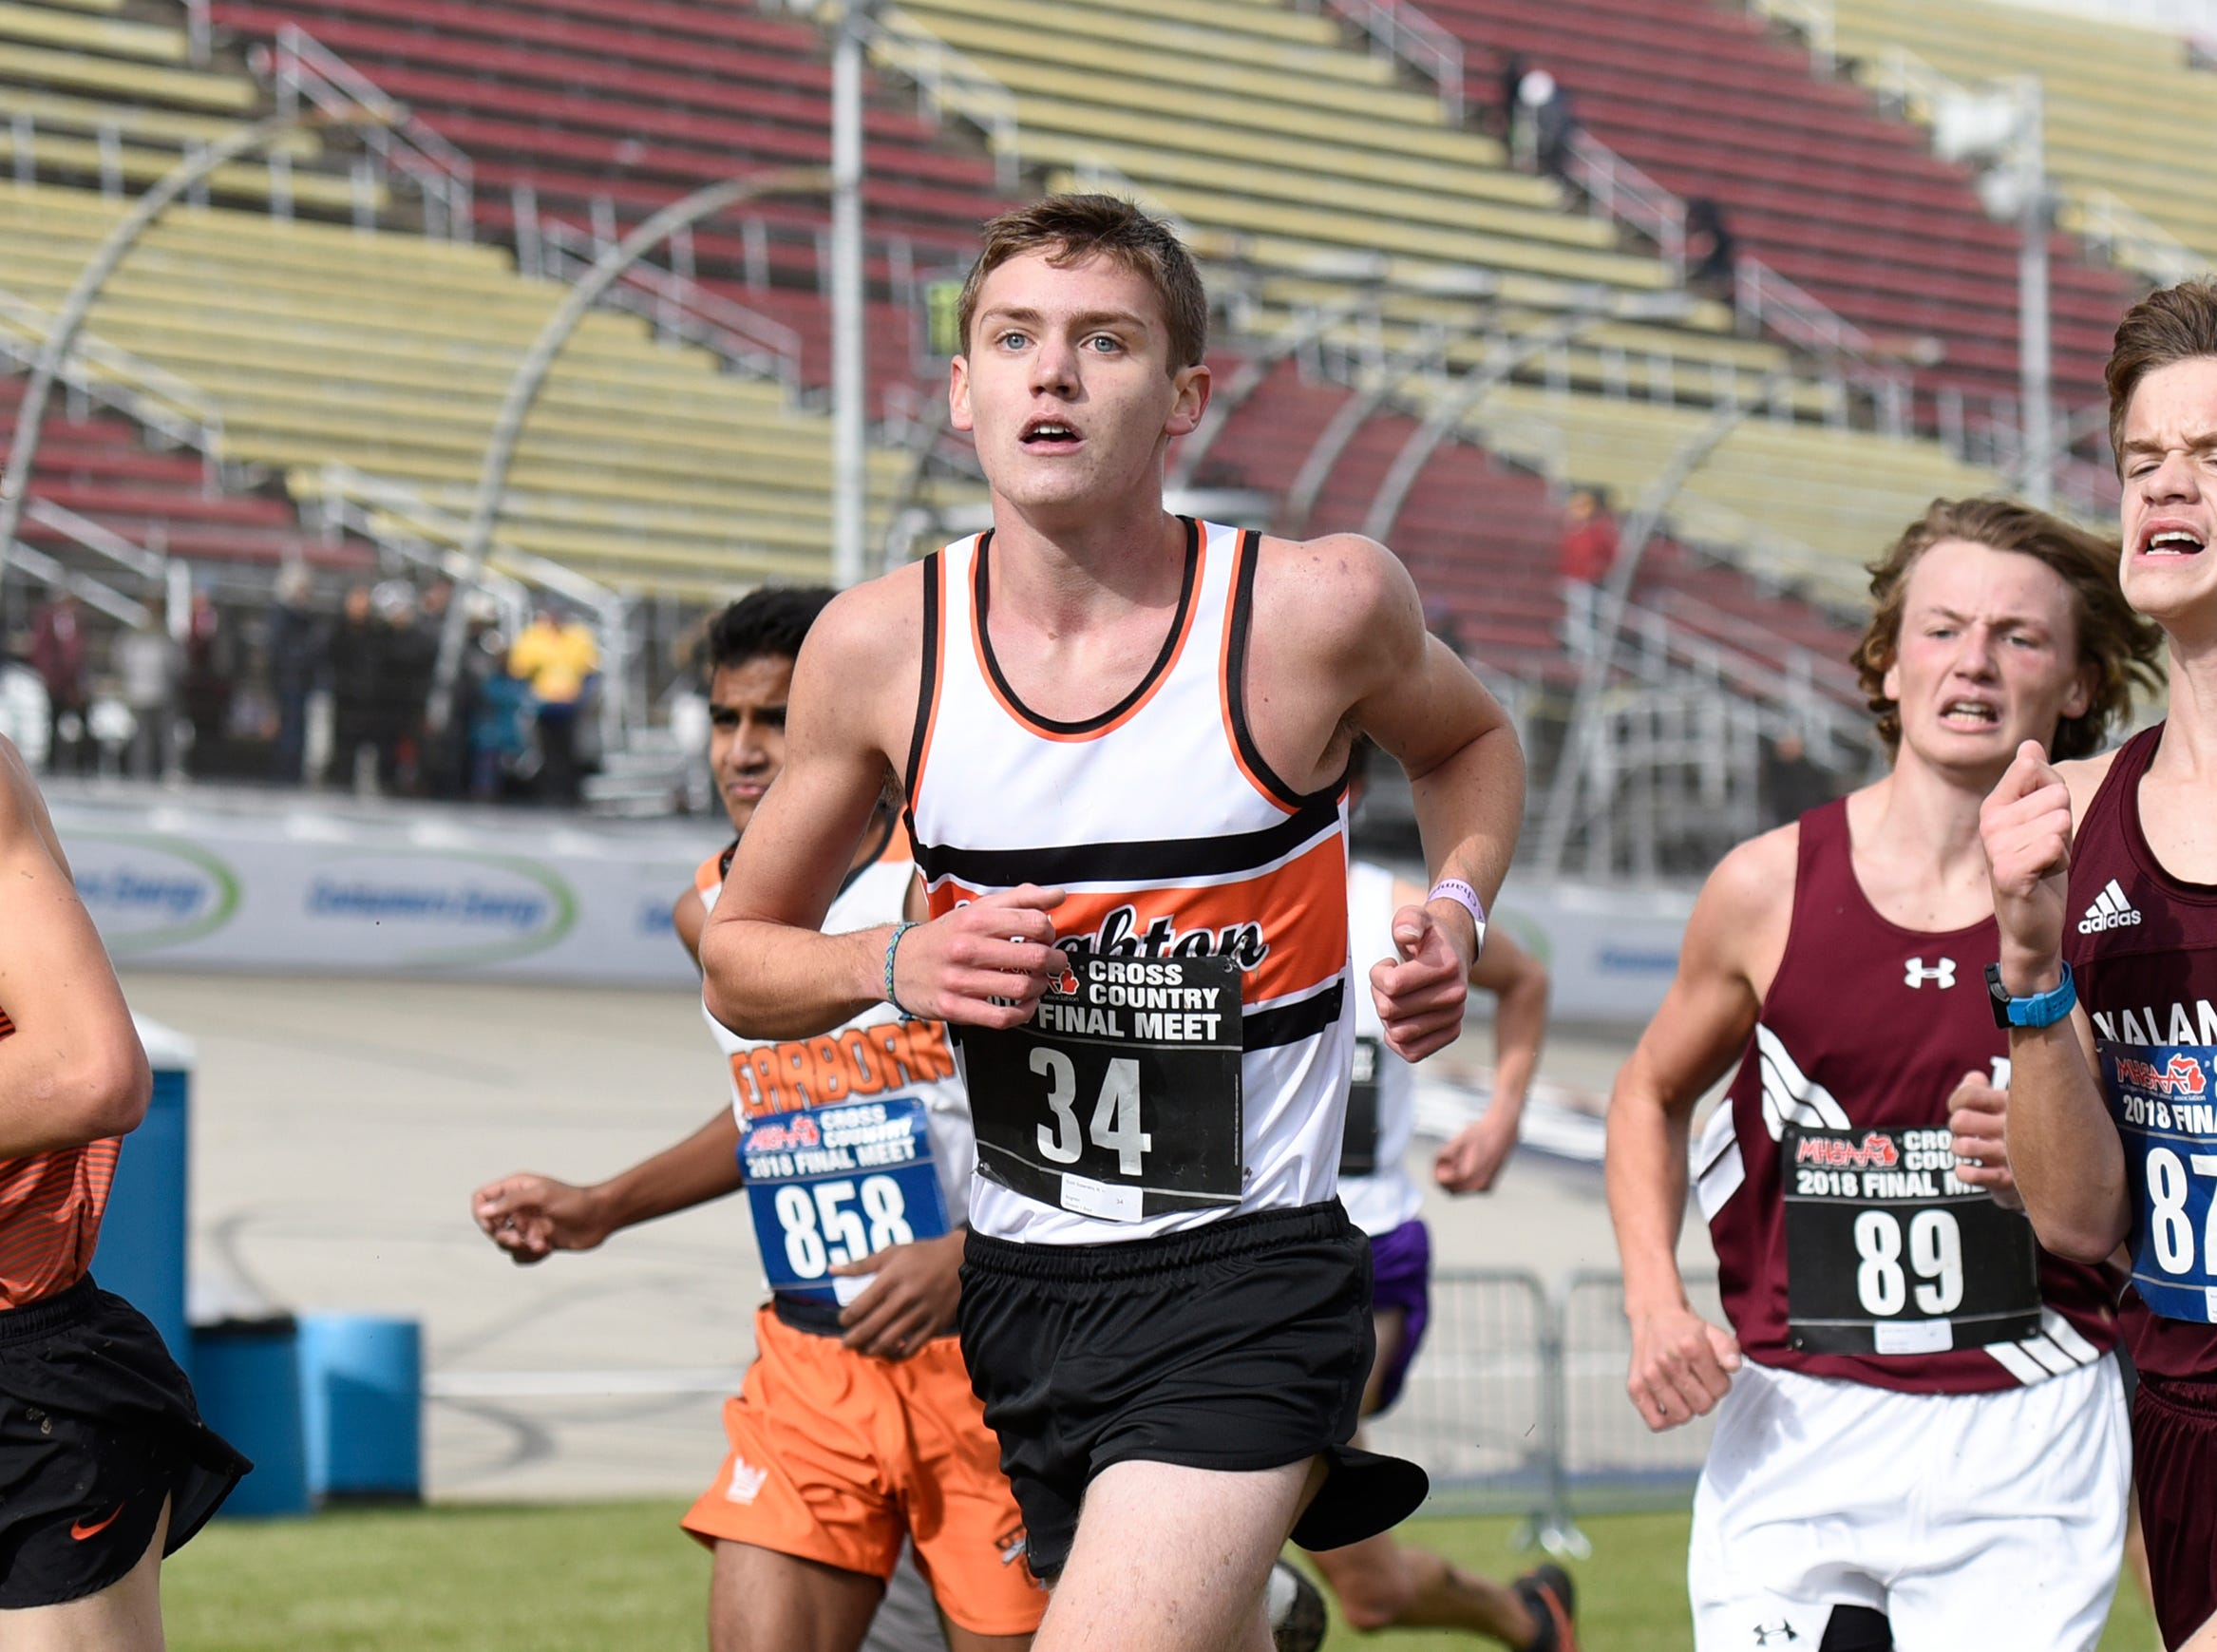 Brighton's Scott Spaanstra  during the Division 1 2018 cross country finals at Michigan International Speedway.